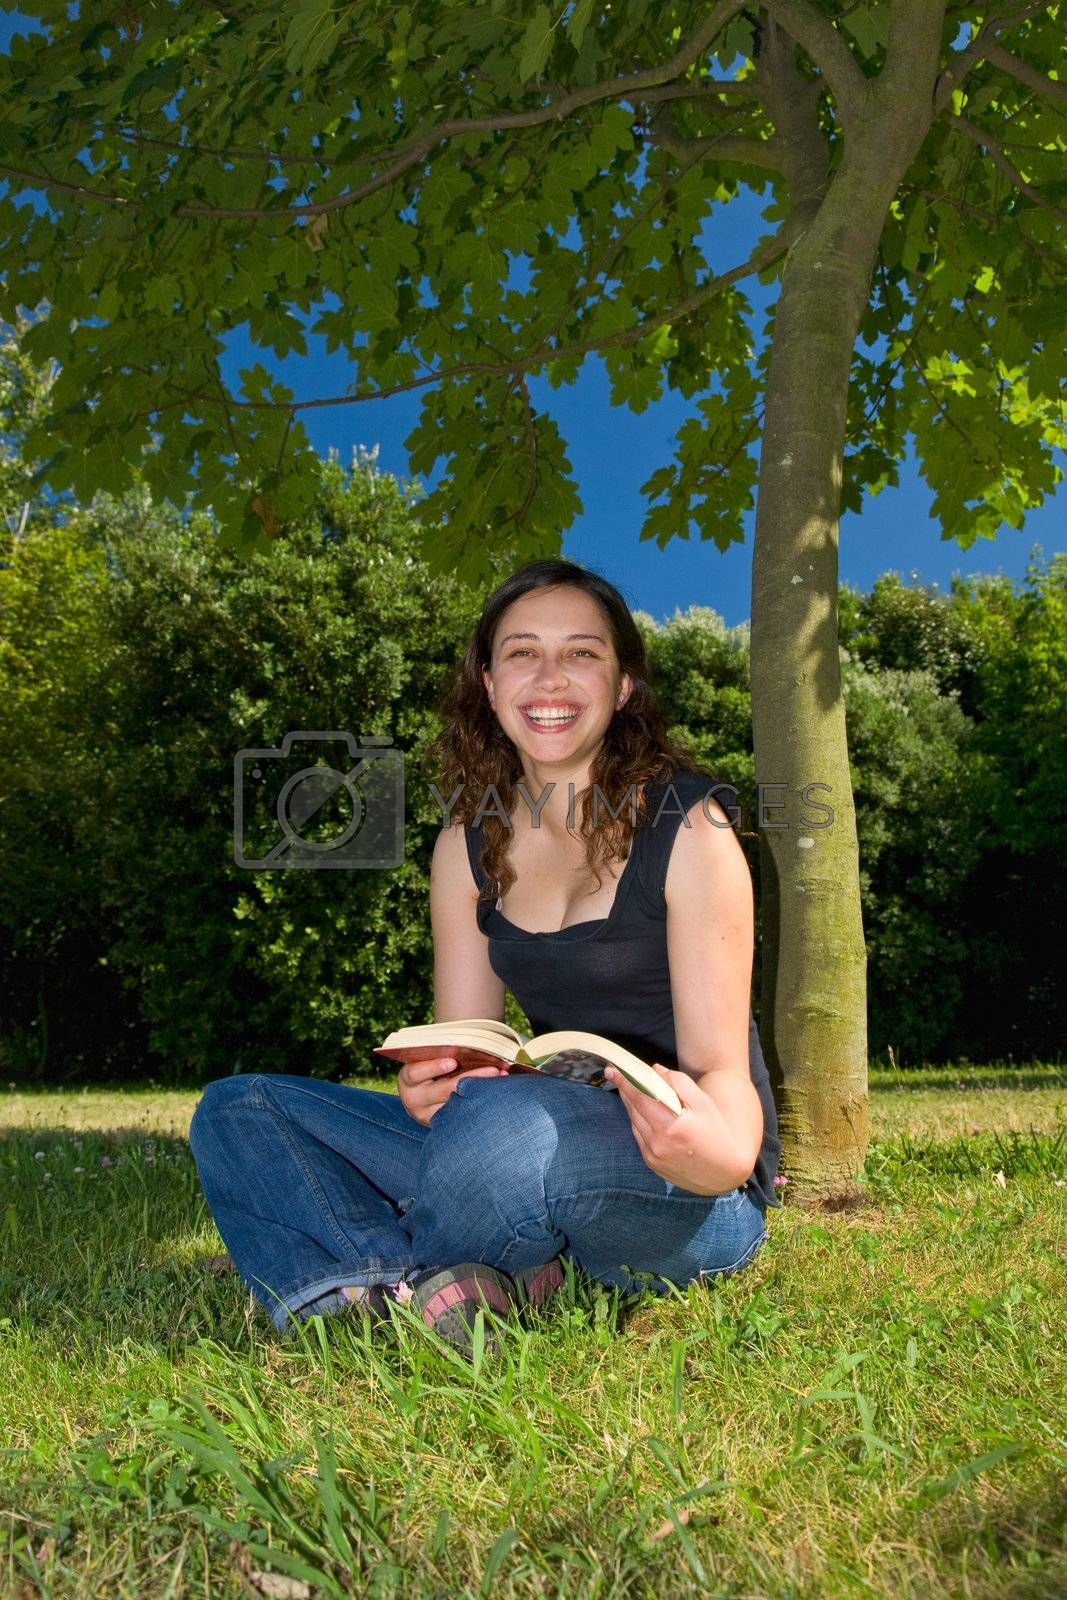 A young girl with a book in a park, smiling.